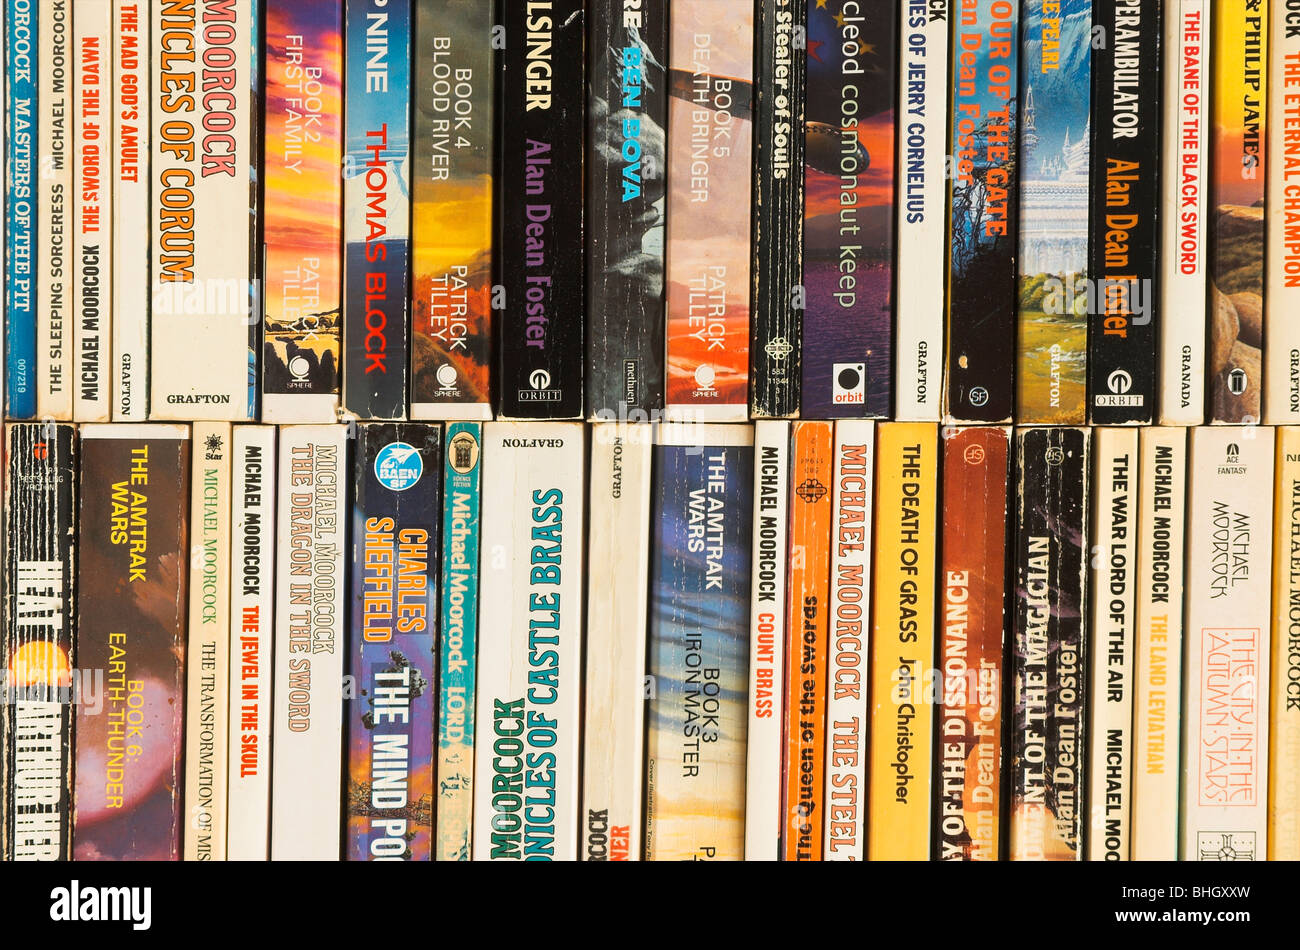 Piles of old second hand science fiction paperback books - Stock Image